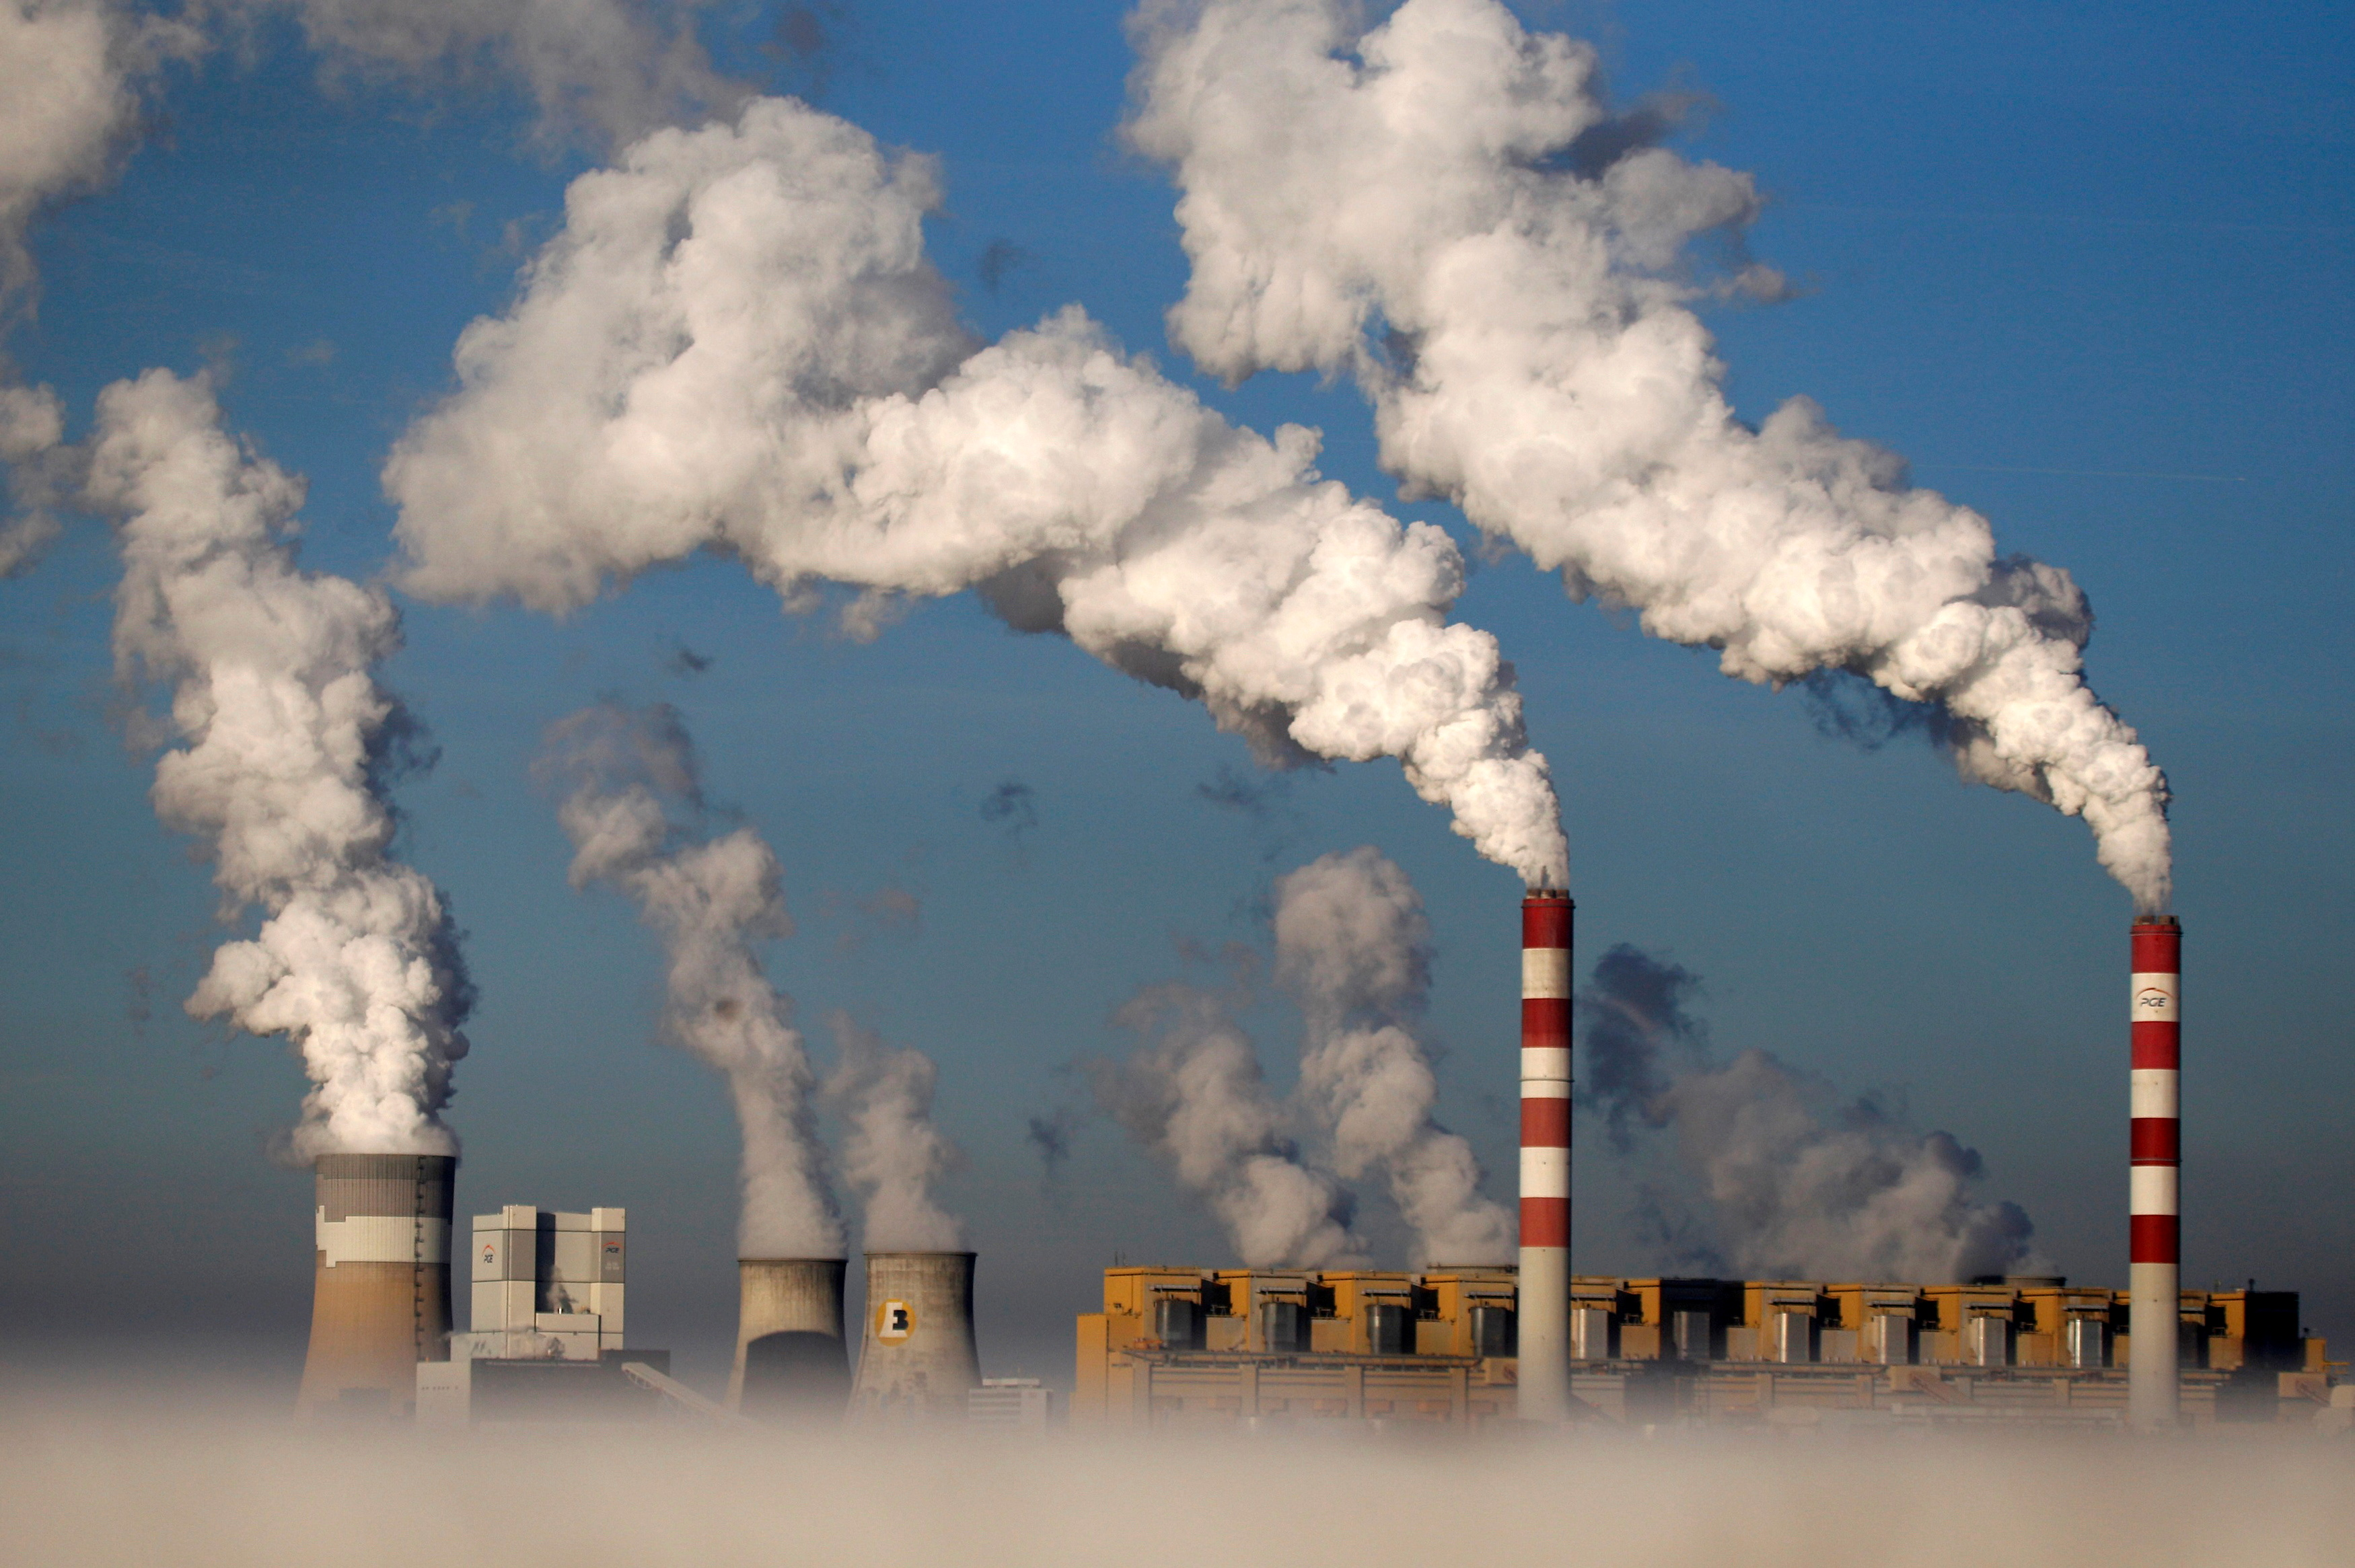 Smoke billows from the chimneys of the Belchatow power station in Belchatow, Poland, October 31, 2013. REUTERS/Kacper Pempel